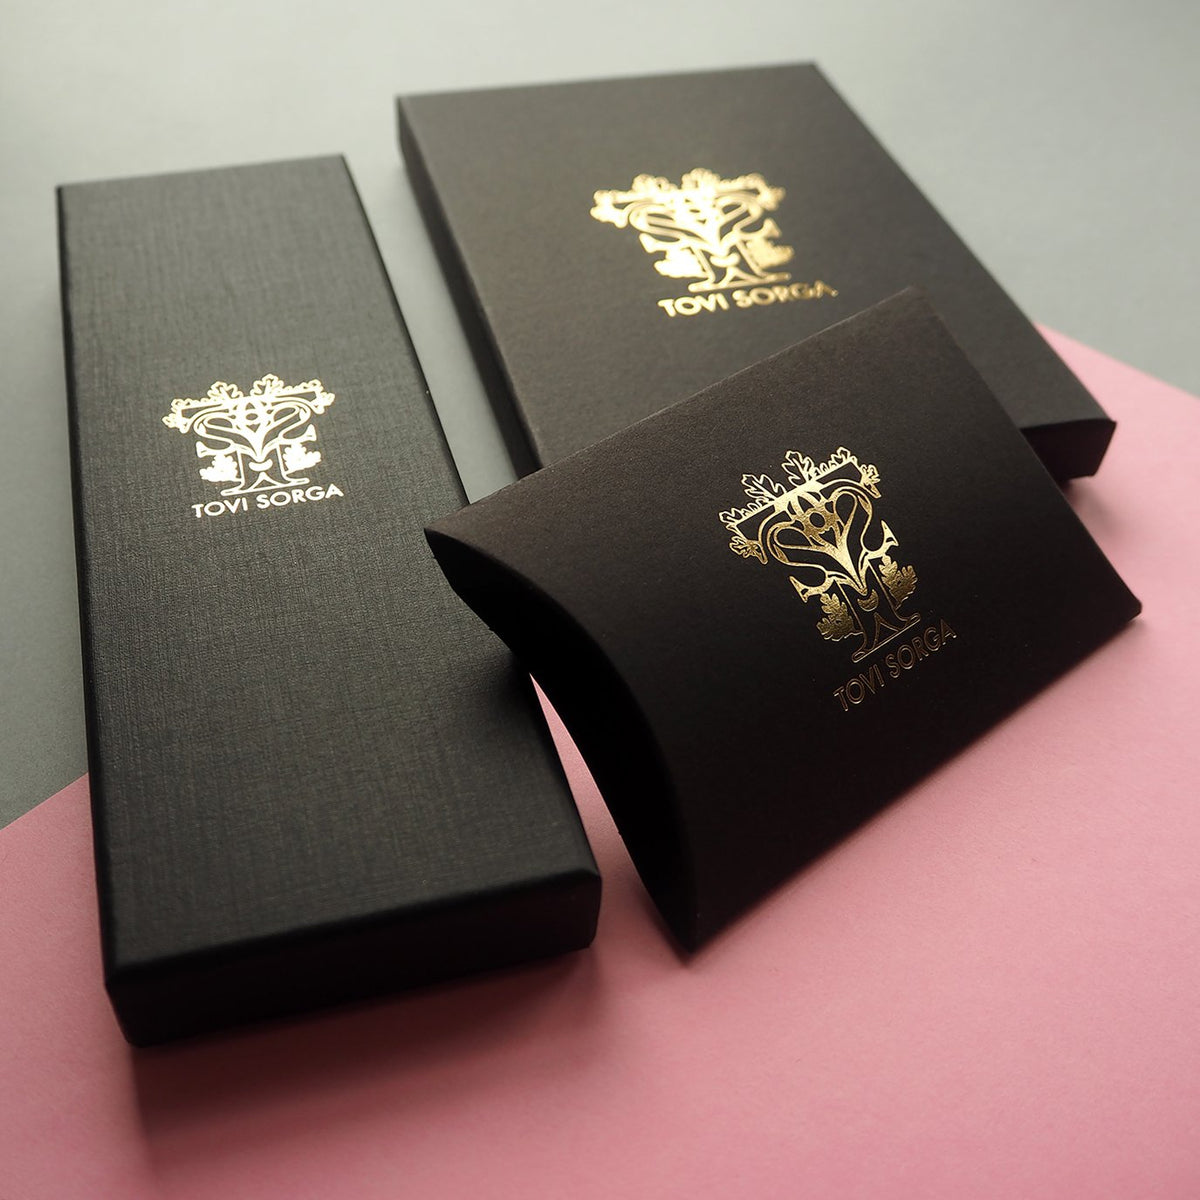 Small leather goods brand Tovi Sorga UK accessories and gifts in printed leather packaging